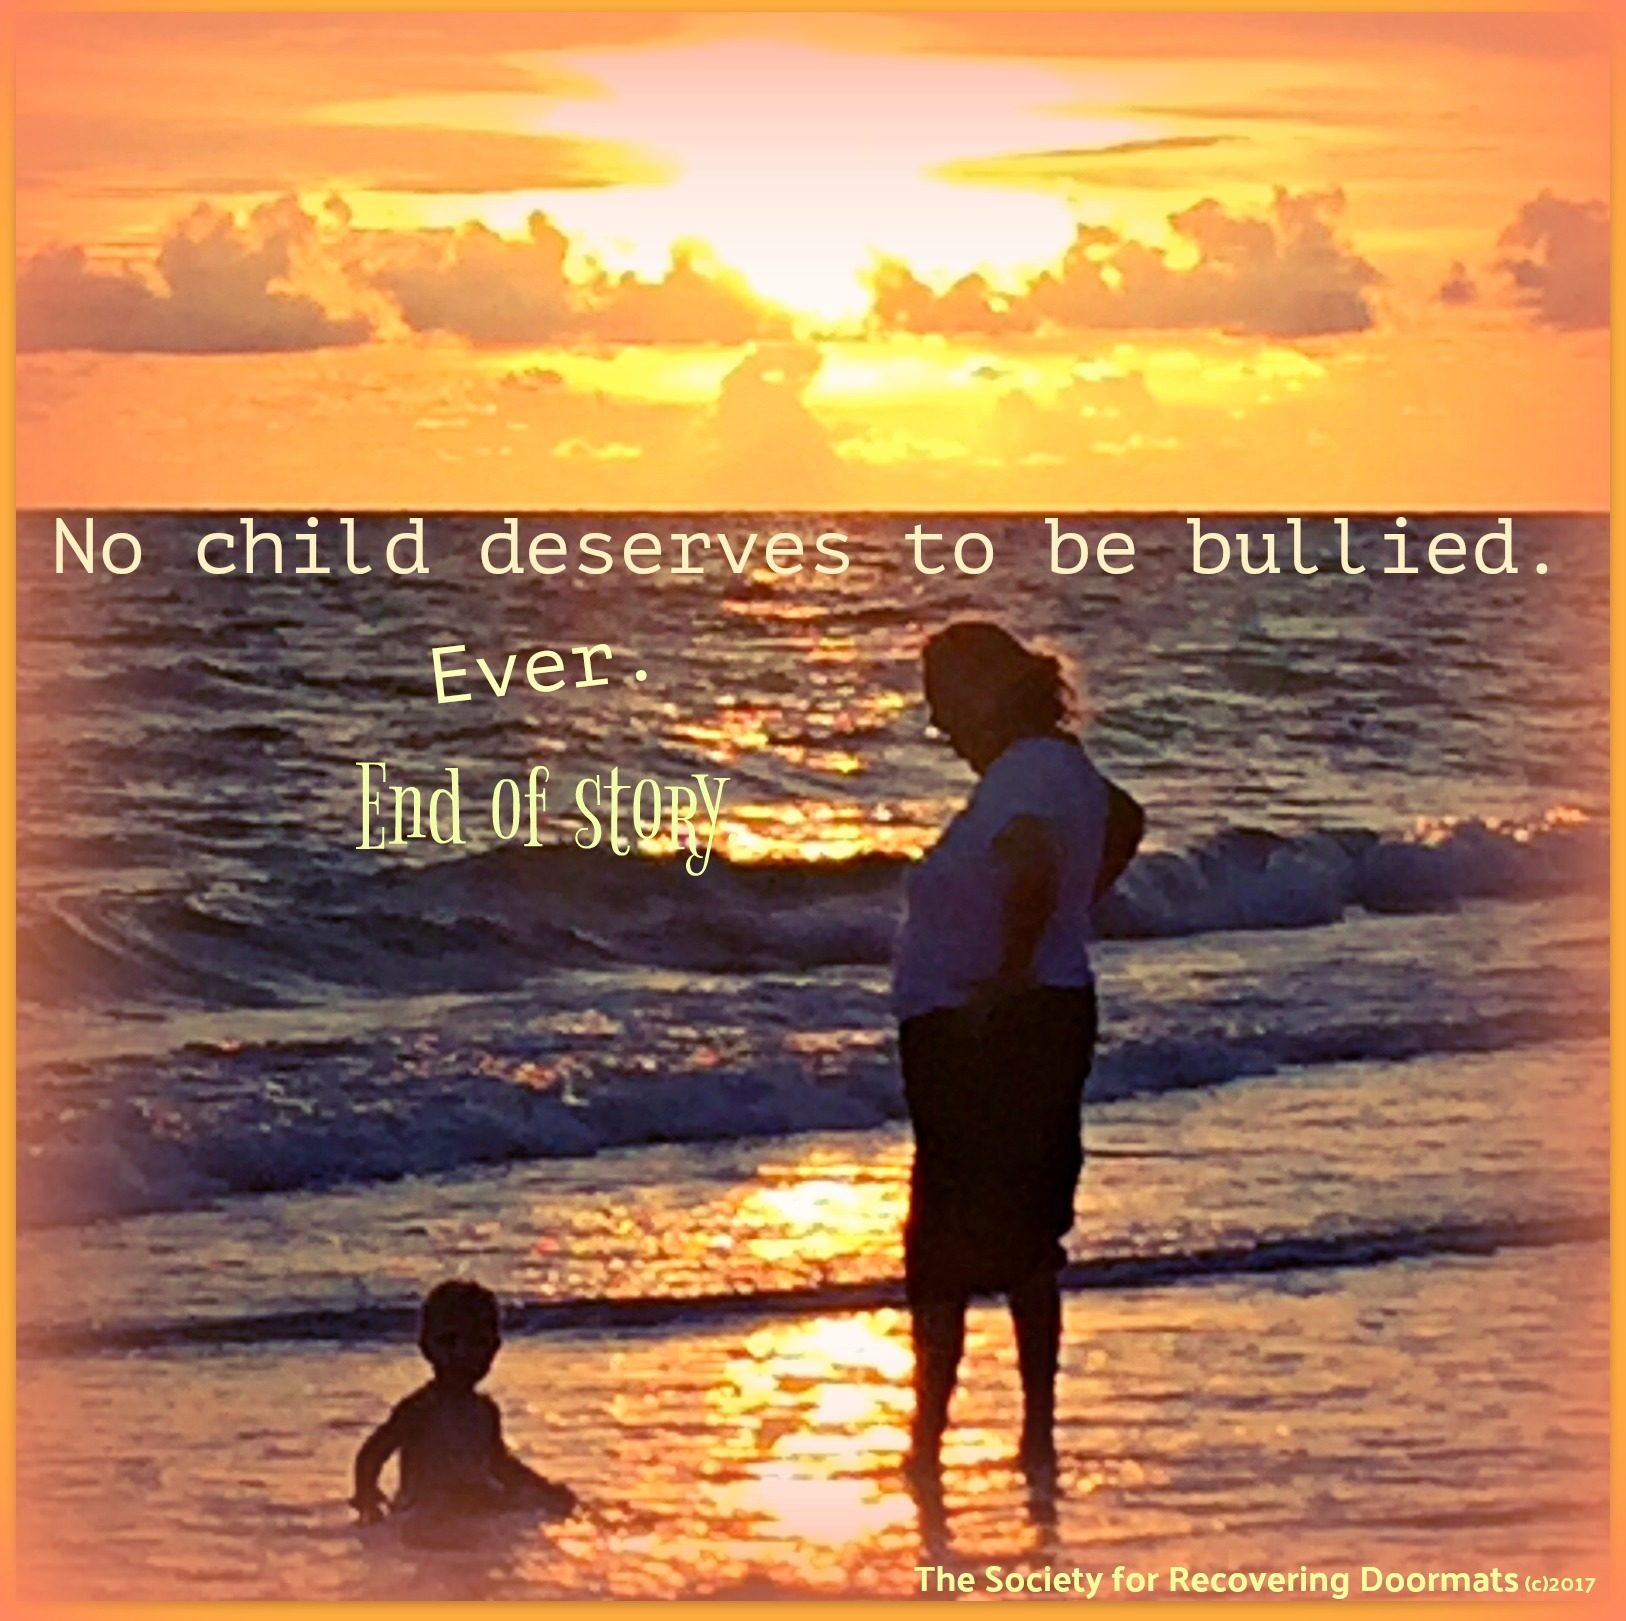 No child deserves to be bullied